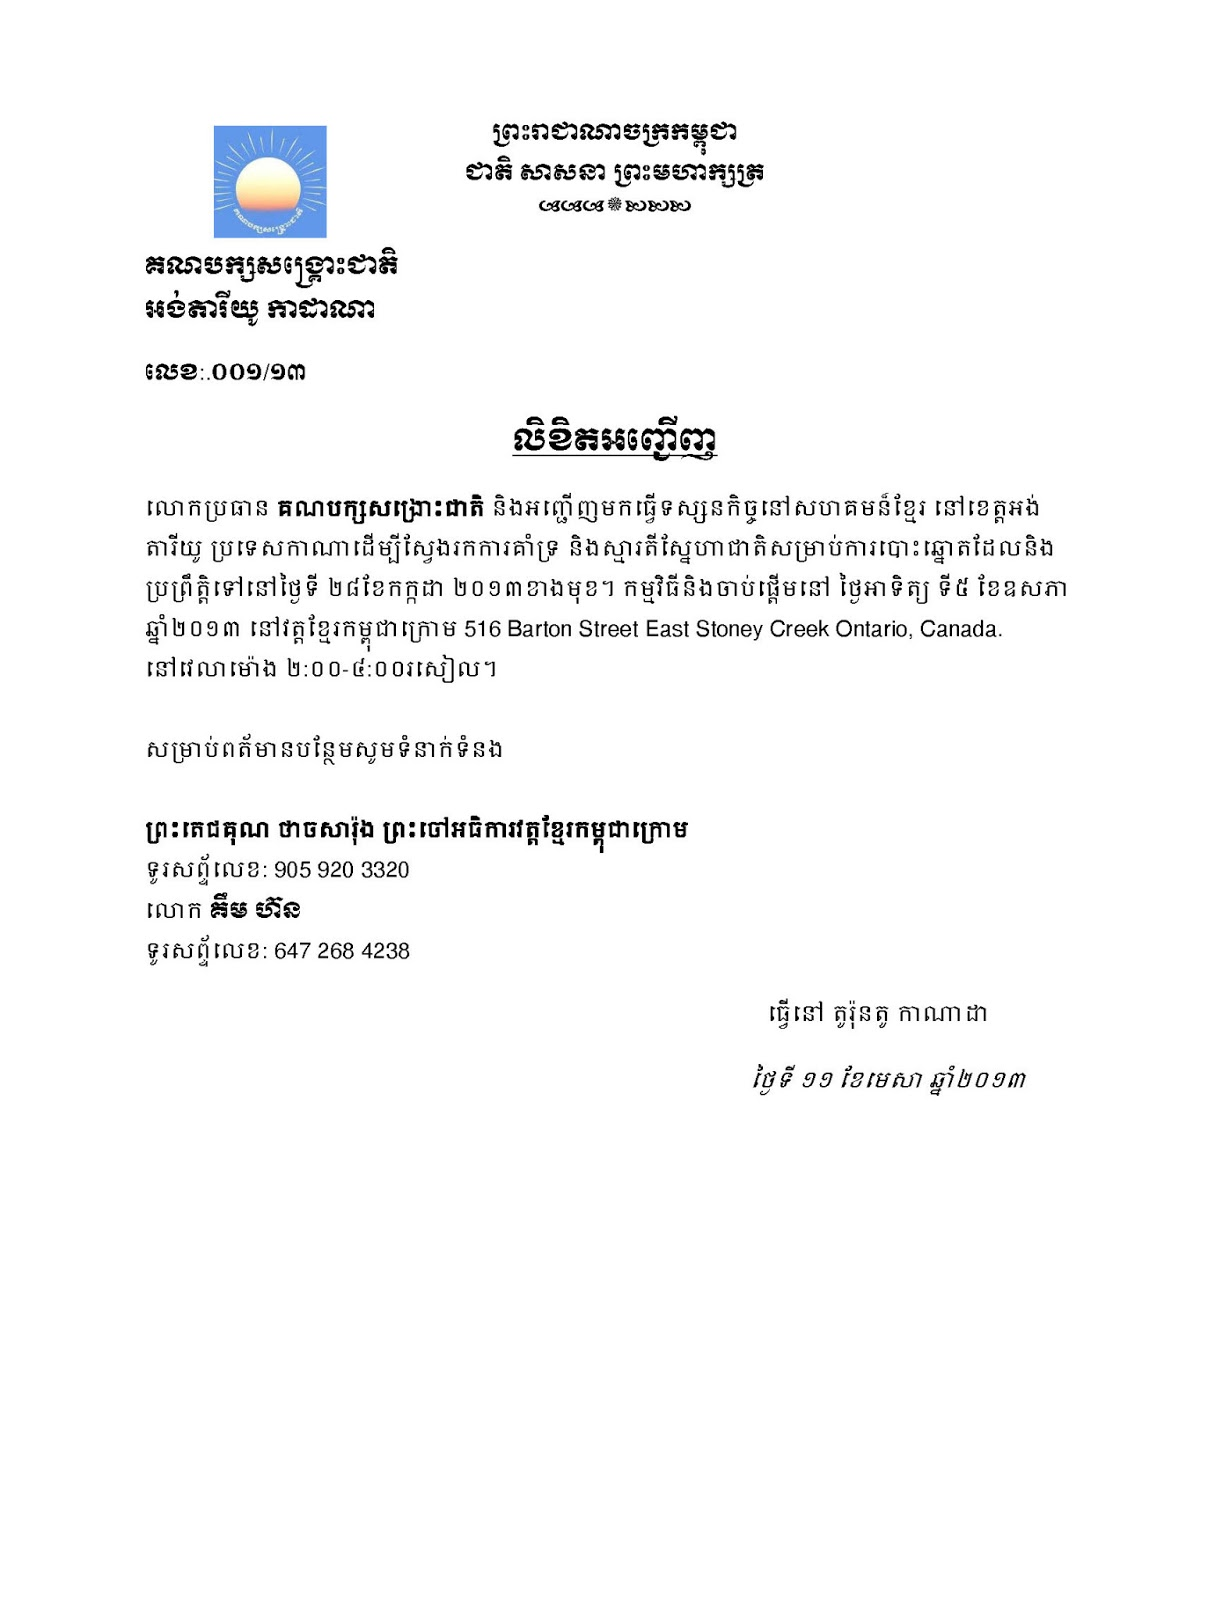 Invitation letter format for media gallery invitation sample and ki media2 ki media meet cnrp president sam rainsy in east stoney cnrpinvitationlettermay52013g stopboris gallery stopboris Images